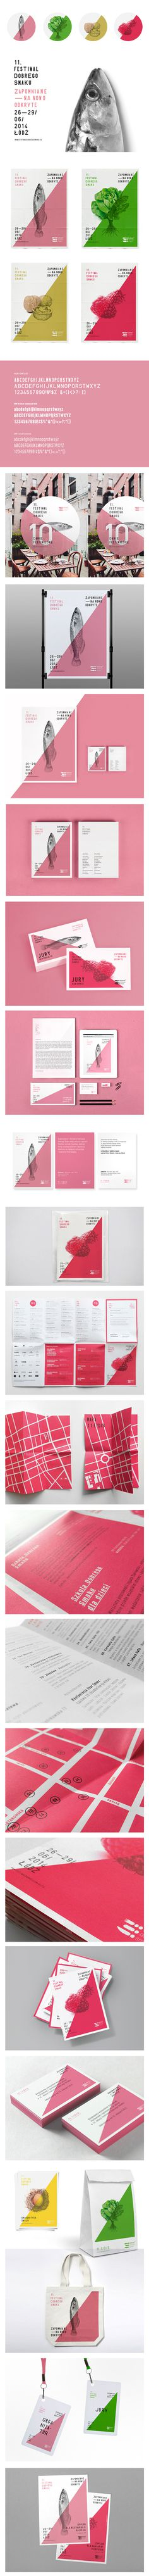 identity of the 11. Festival Dobrego Smaku in Lodz on Branding Served #branding #food